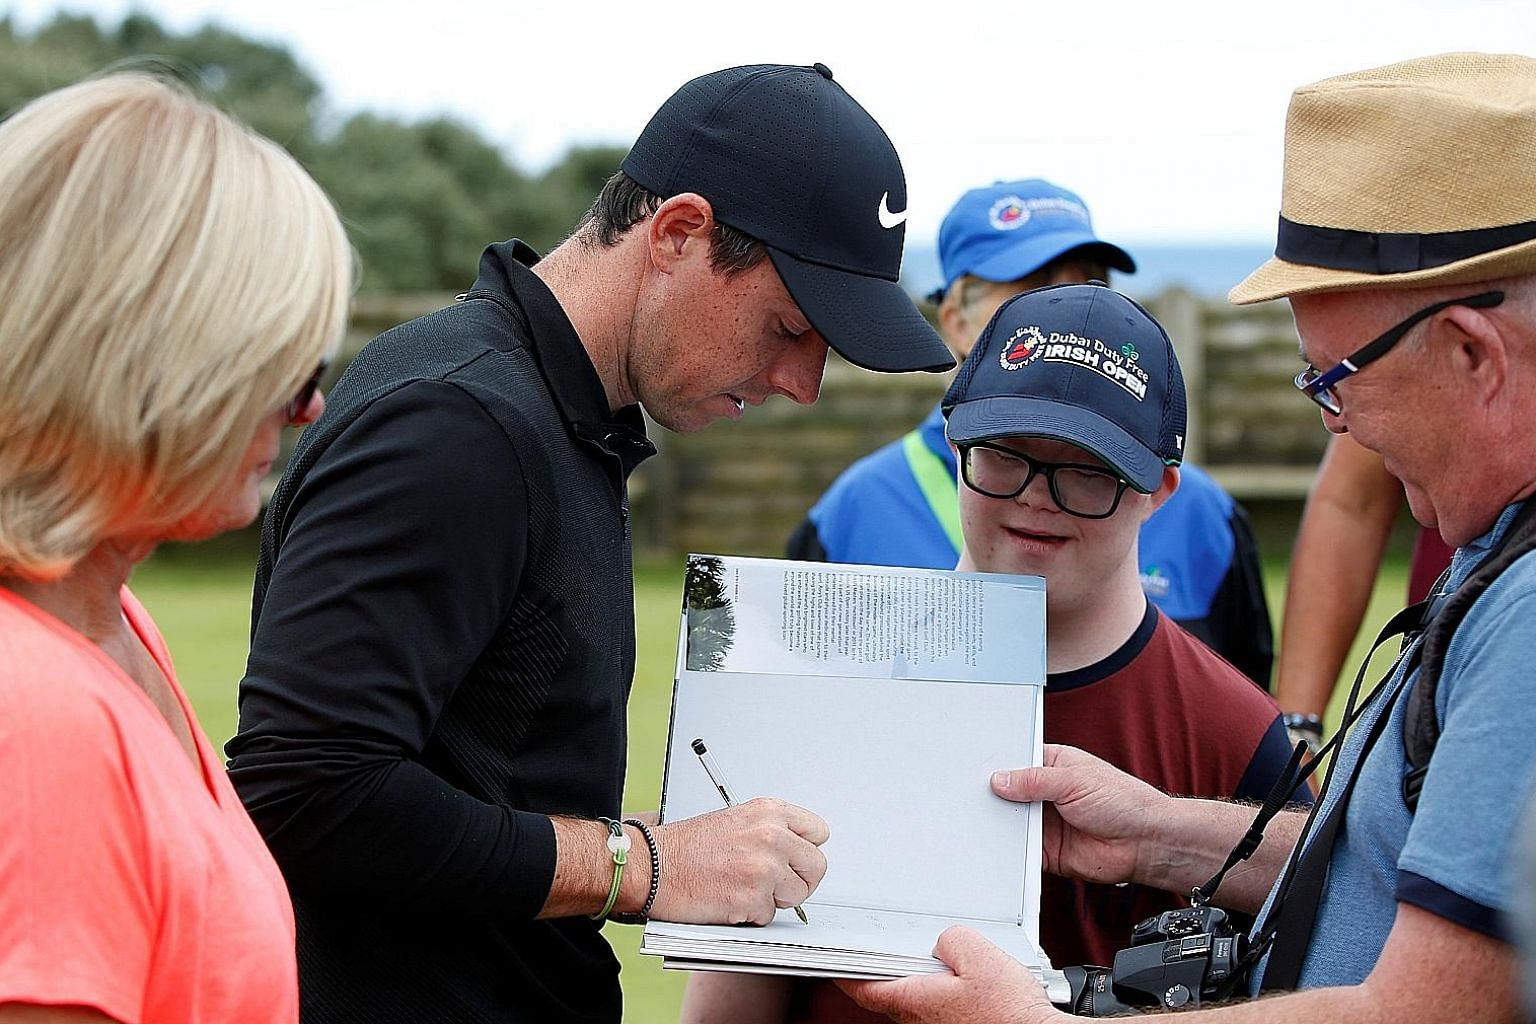 Rory McIlroy signing an autograph in Portstewart, Northern Ireland. The golfer revealed last week that he has disliked Roy Keane ever since the former Irish midfielder turned down his boyhood request for an autograph.